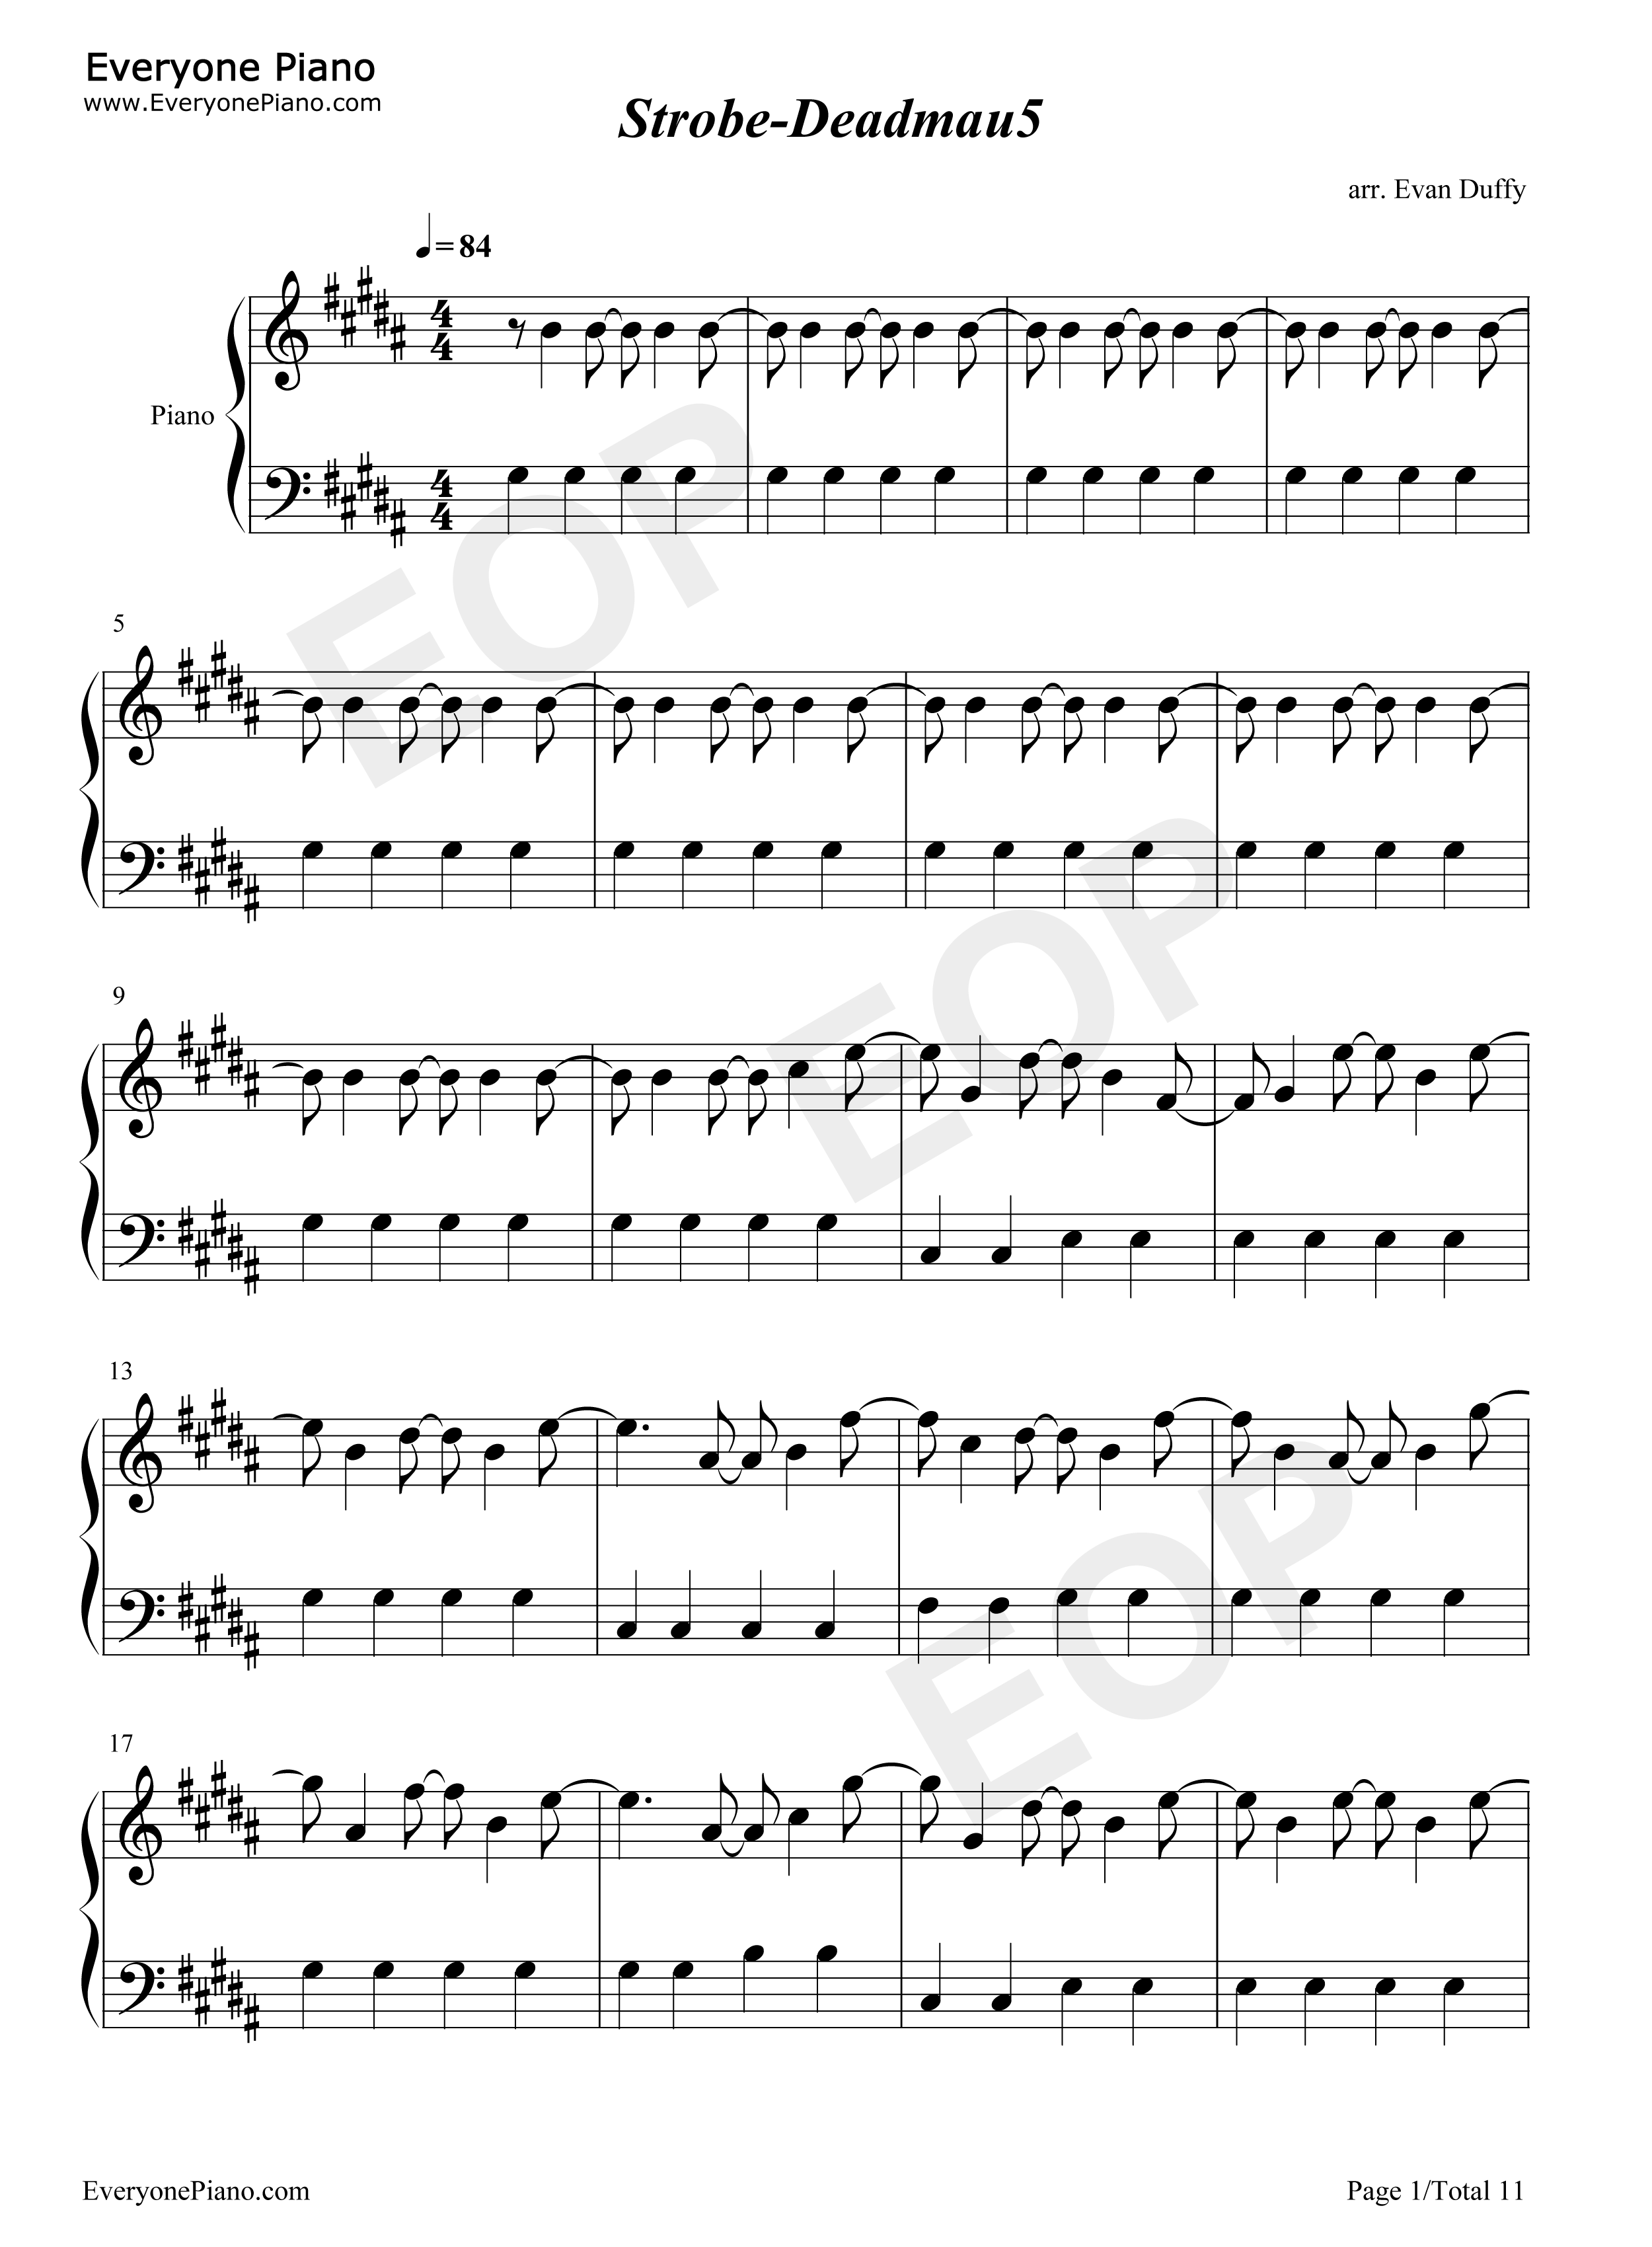 Strobe-Deadmau5 Stave Preview 1-Free Piano Sheet Music u0026 Piano Chords